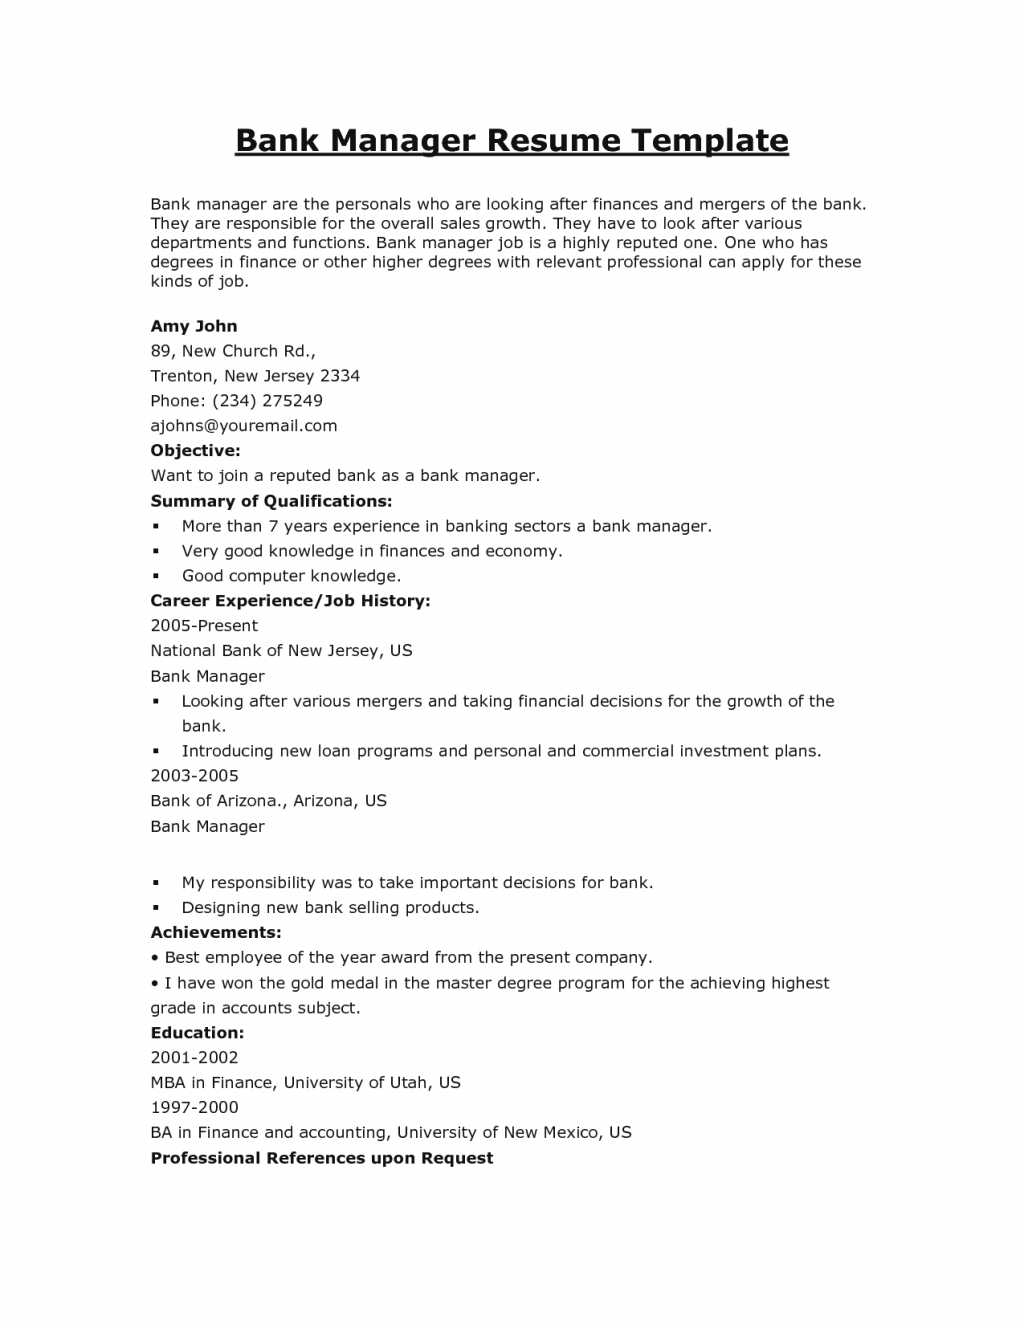 wso resume template example-wso cover letter april onthemarch co 10-p